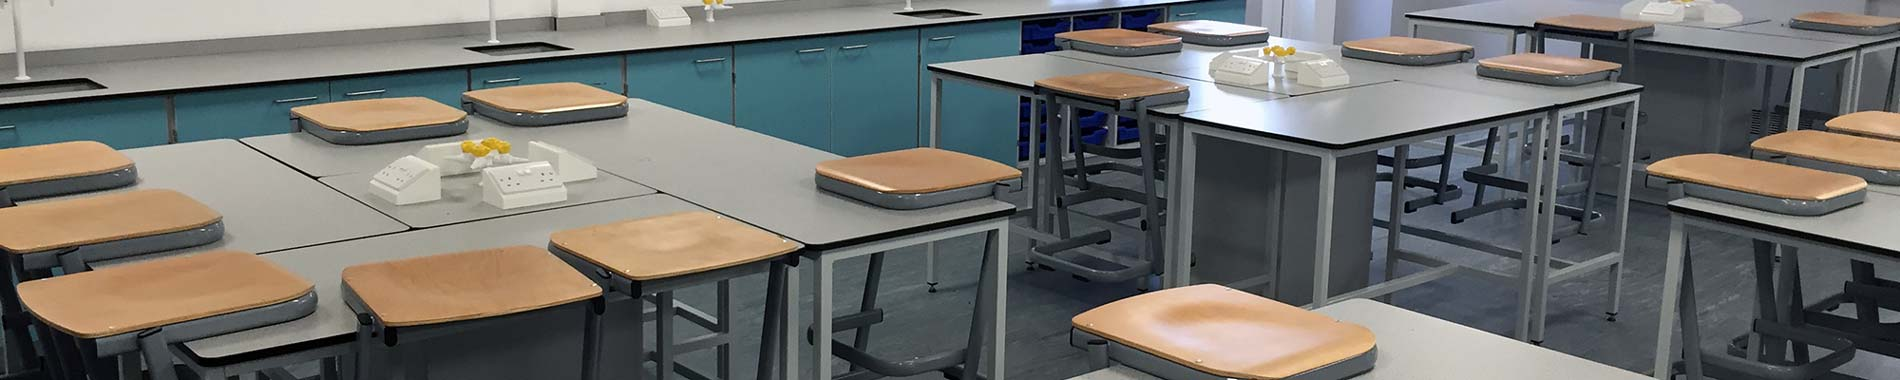 school tables and pods in a science classroom | Interfocus school tables